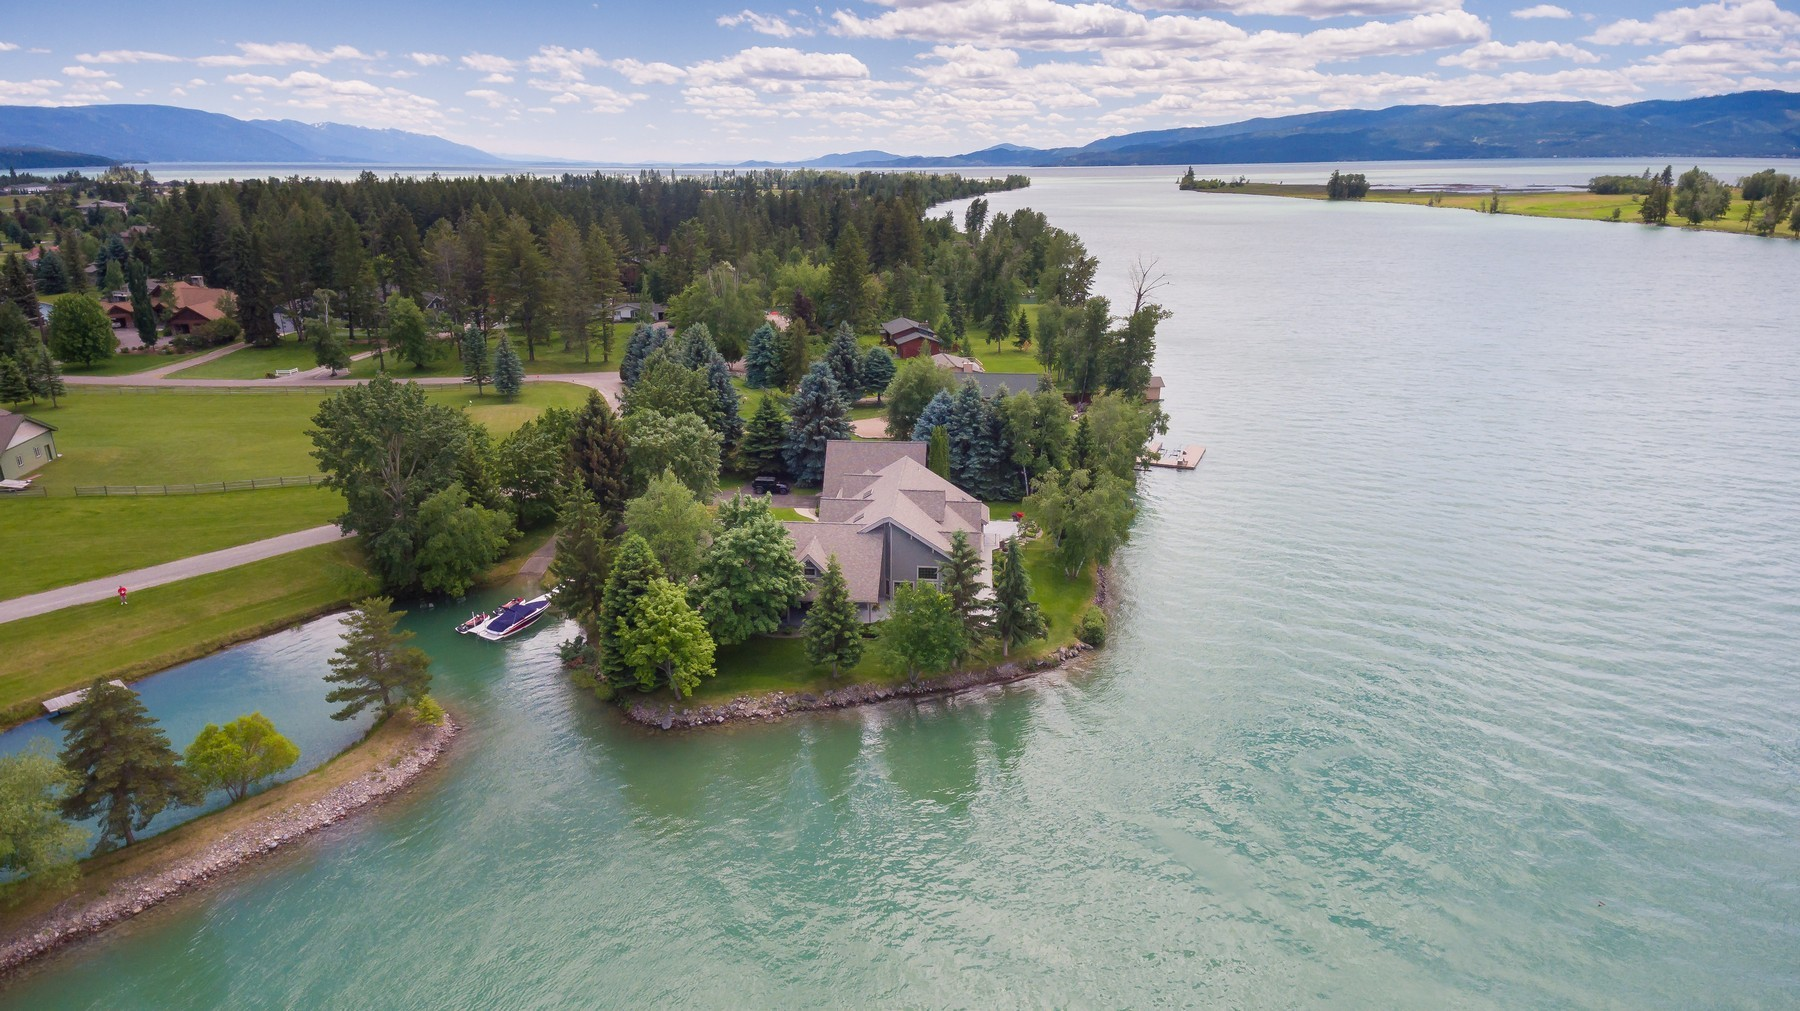 Single Family Home for Sale at 181 McDowell 181 Mcdowell Dr Bigfork, Montana 59911 United States